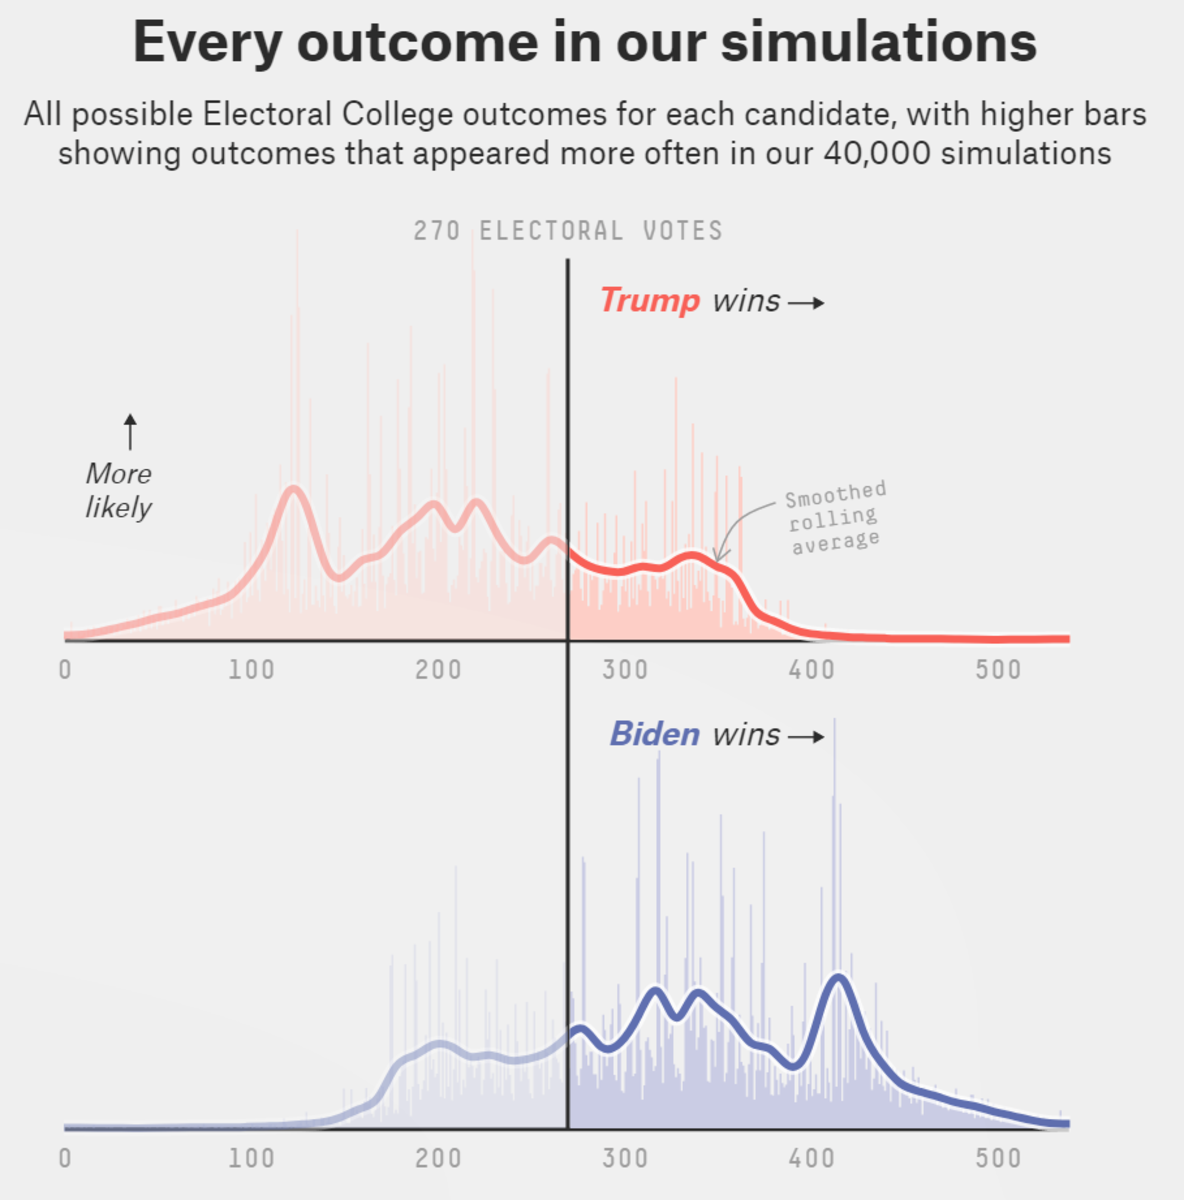 Every Outcome in Our Simulations